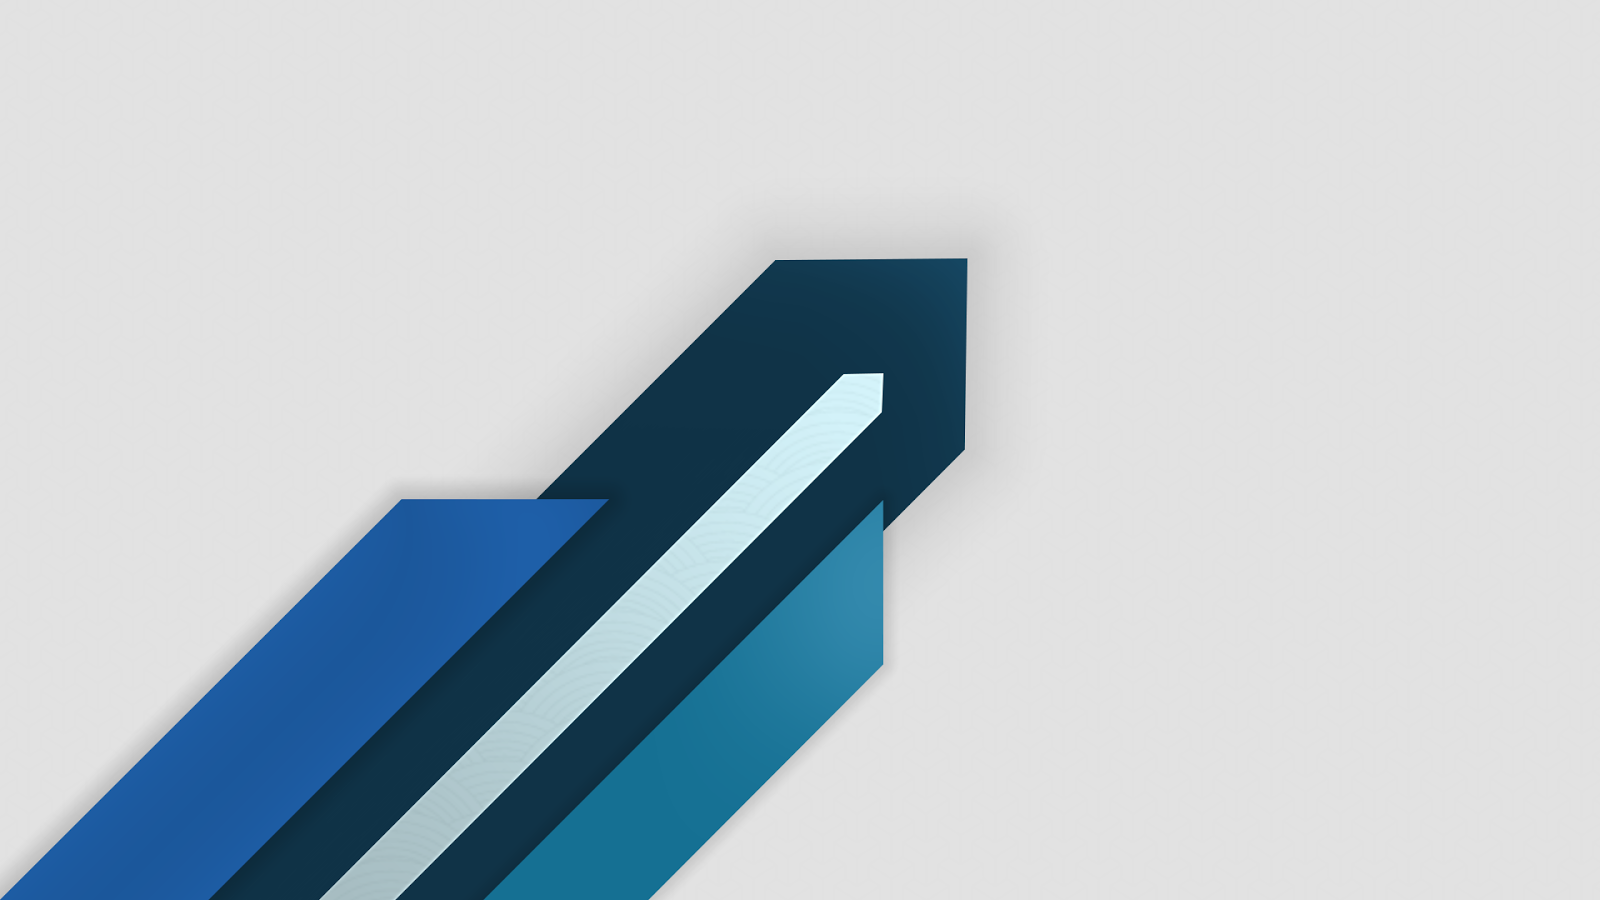 [DOWNLOAD] 11 Wallpapers with Material Design like Style ...